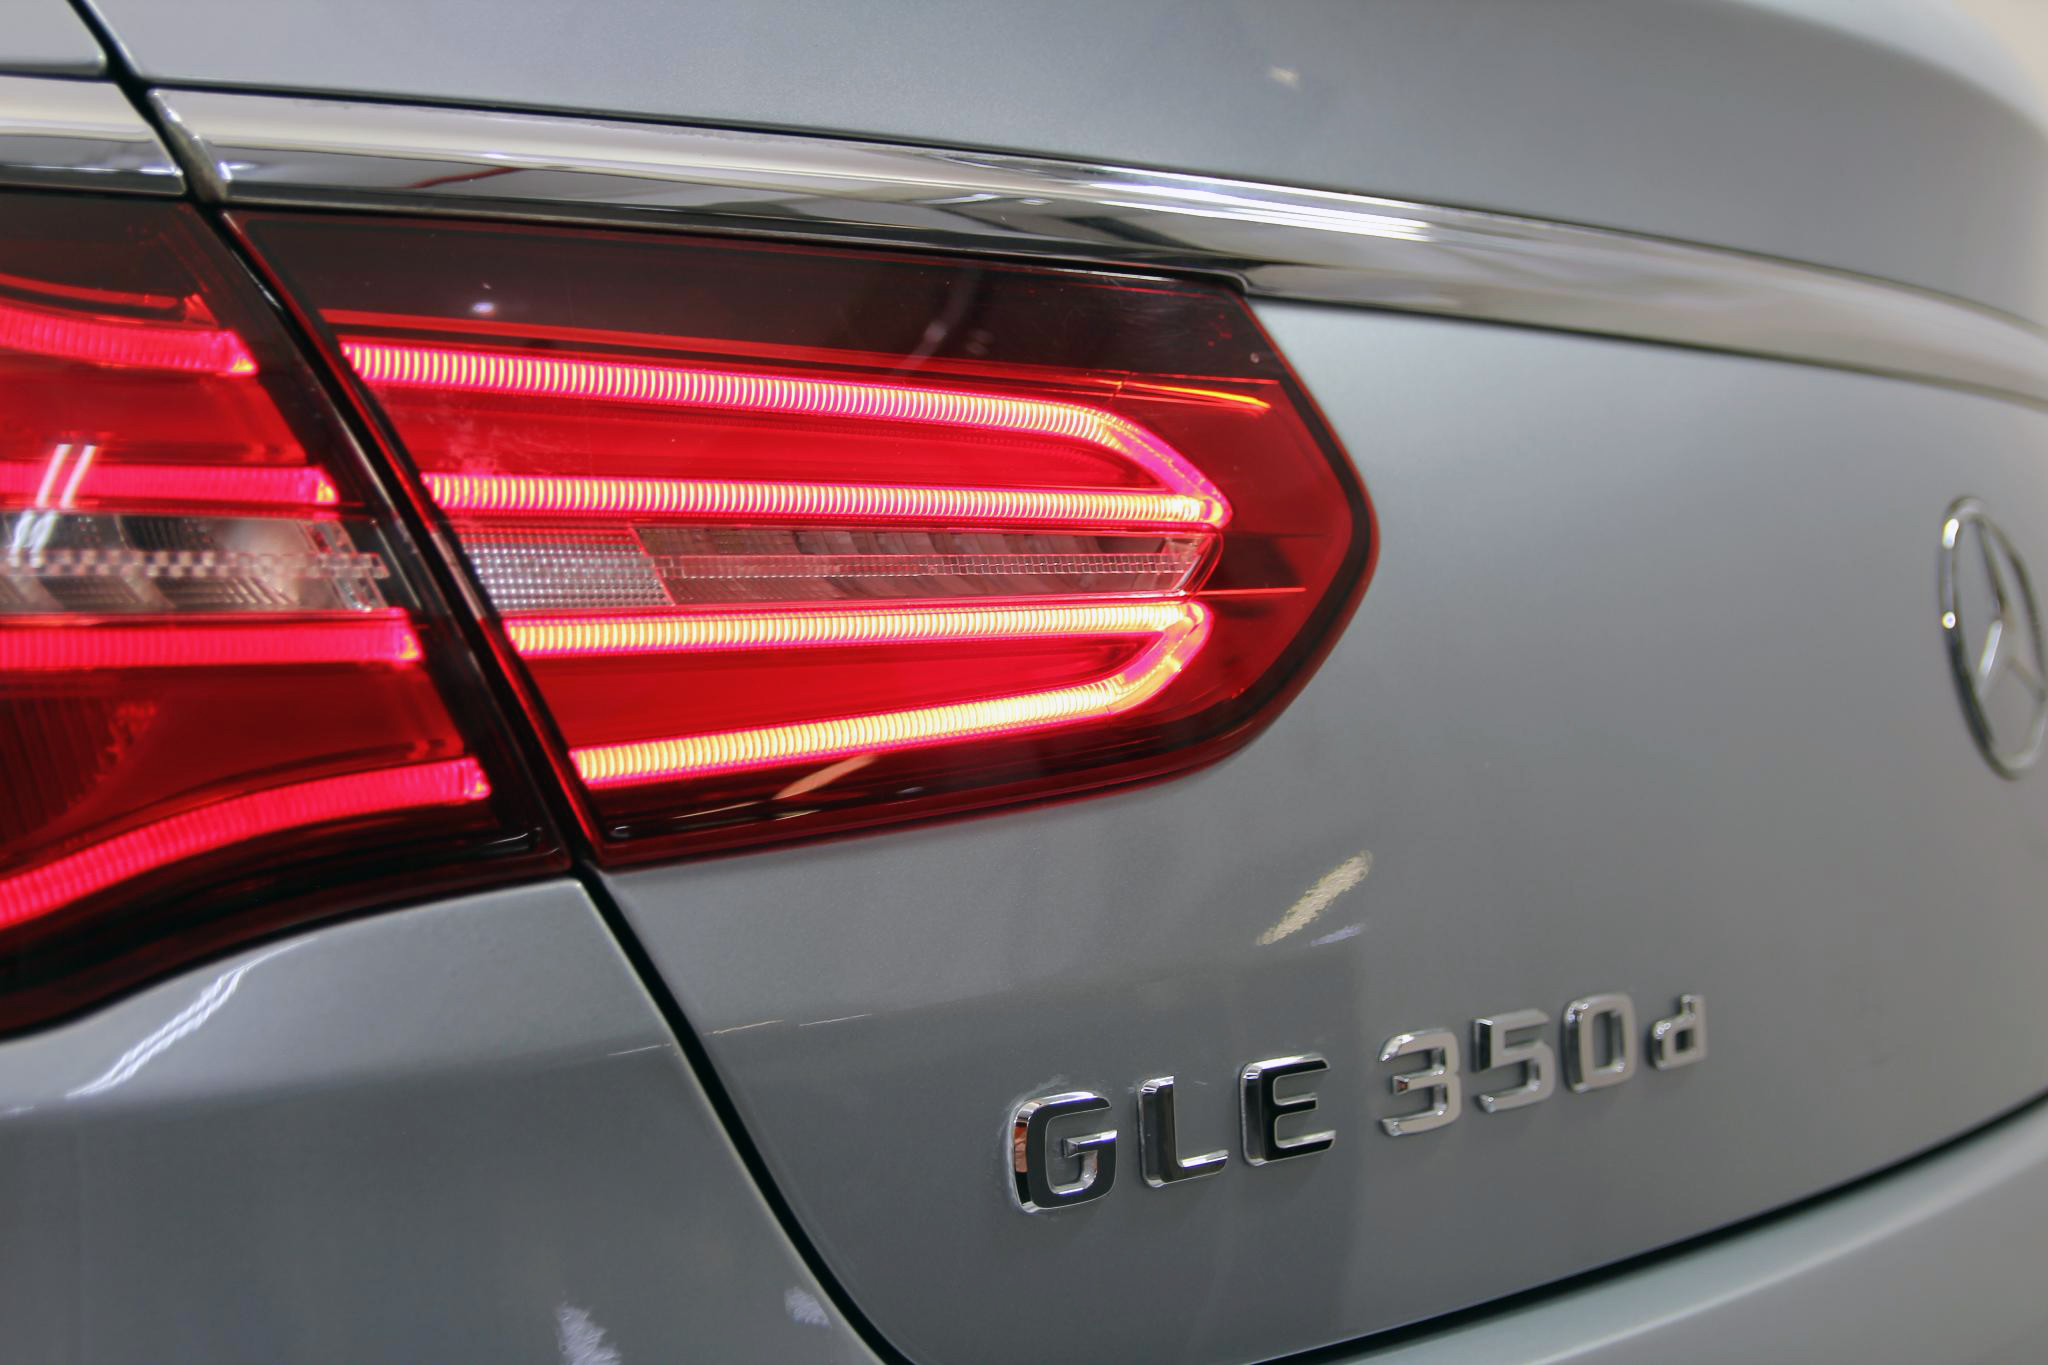 Mercedes-Benz Clase GLE GLE COUPE 350 D 4MATIC imagen 56